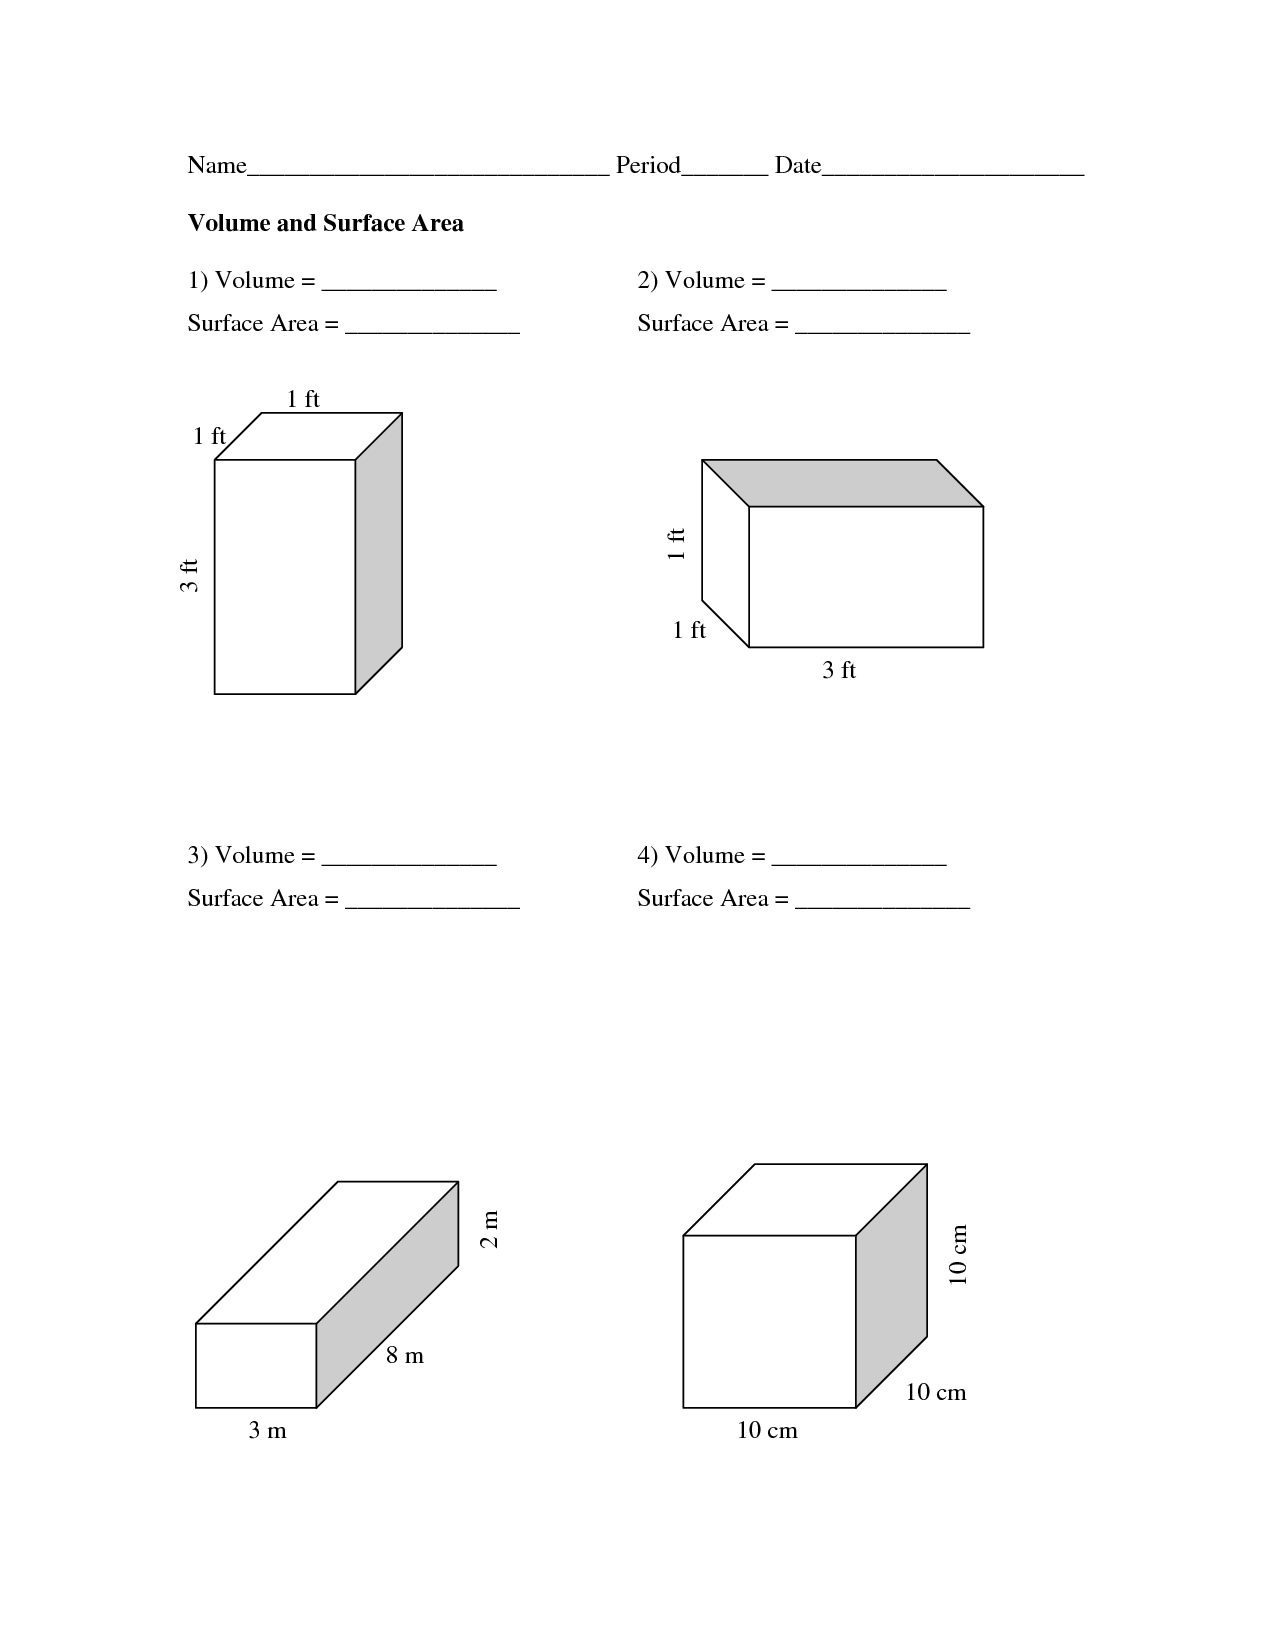 small resolution of volume and surface area worksheets   Volume and Surface Area Worksheets -  PDF   Area worksheets